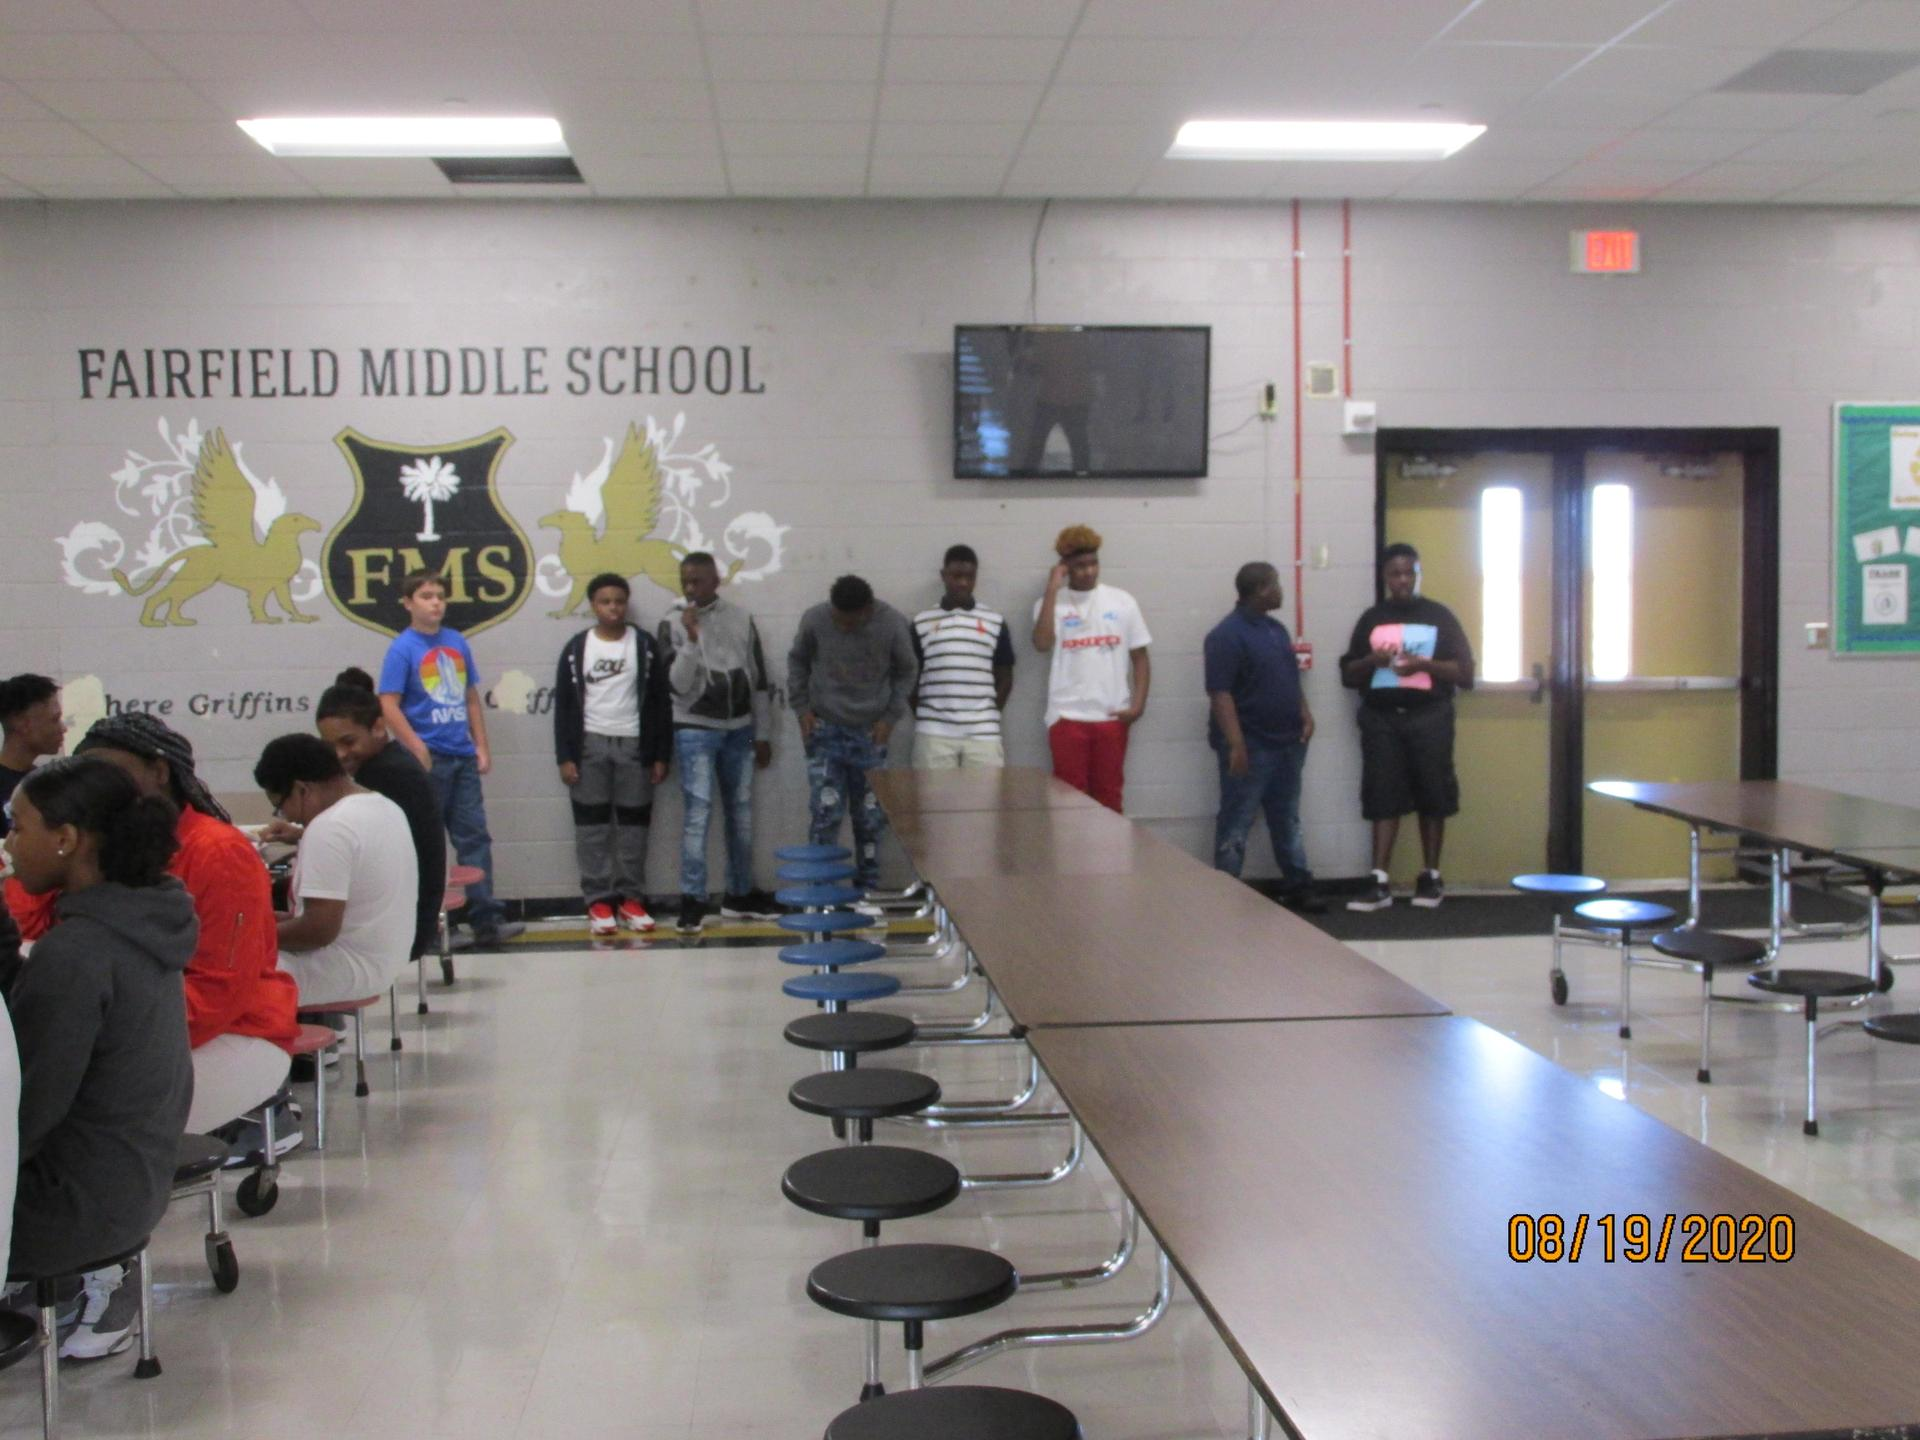 Students in line and sitting at tables in the cafe